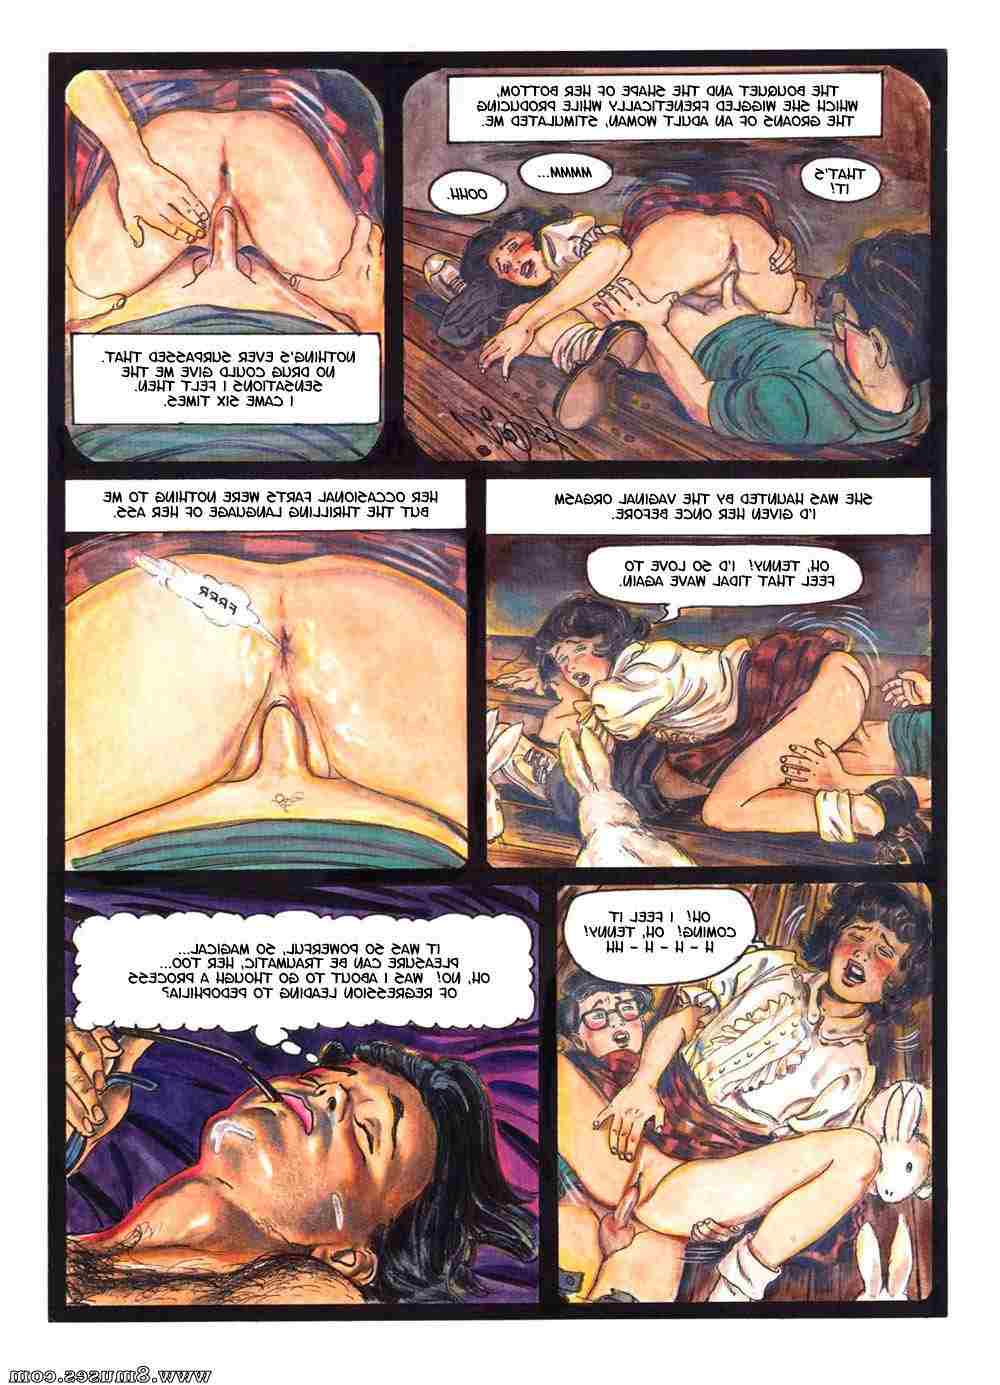 Ferocius-Comics/Forbidden-Flower Forbidden_Flower__8muses_-_Sex_and_Porn_Comics_46.jpg